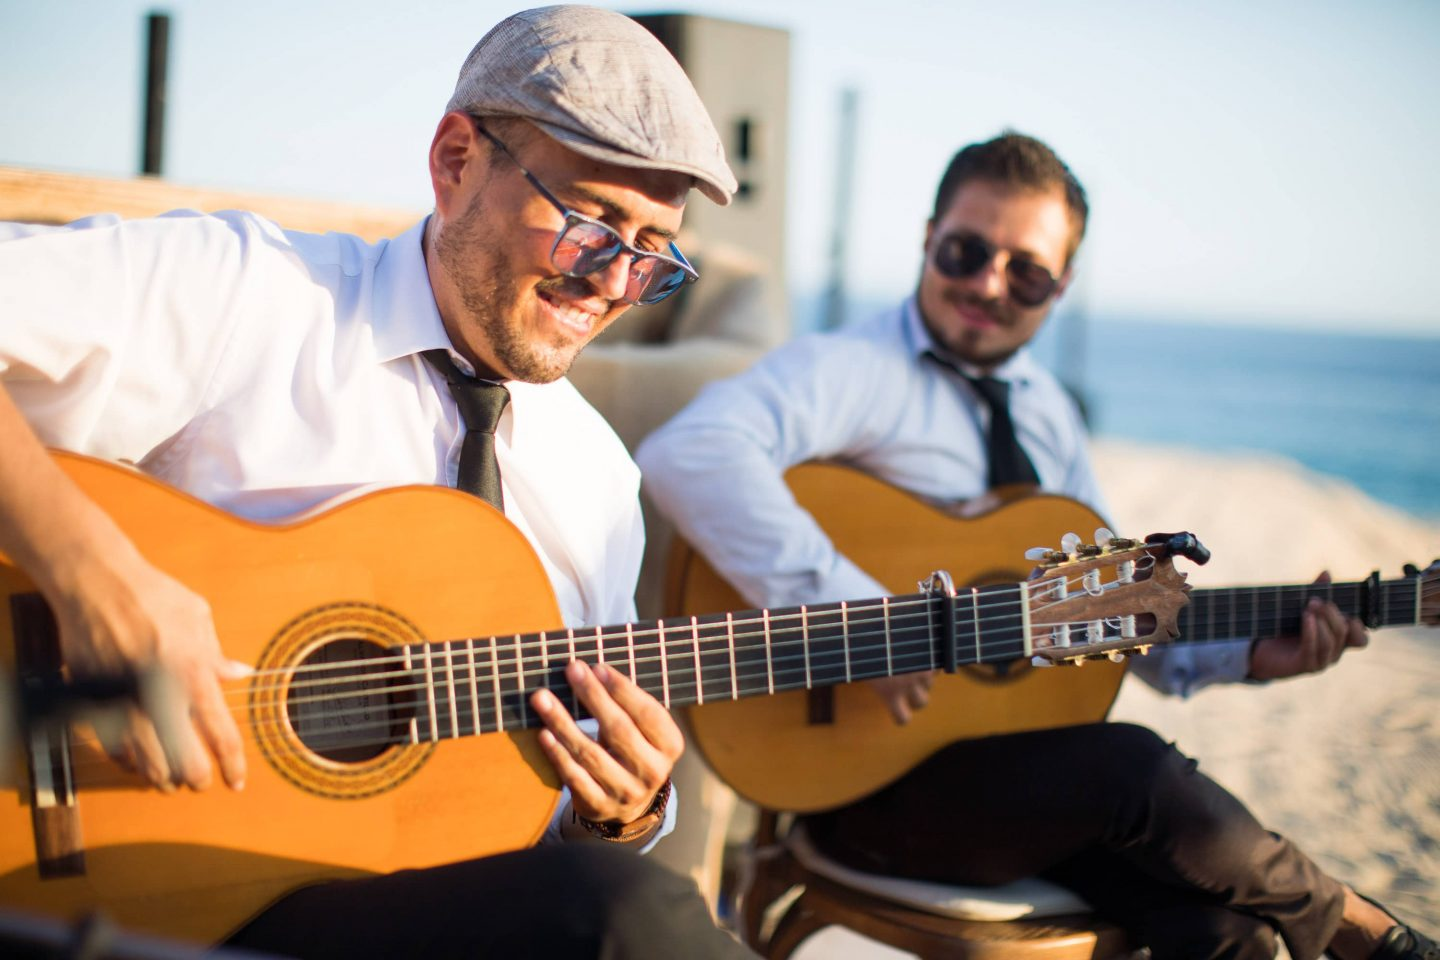 Entertainment at this Los Cabos wedding in Mexico | Photo by Allan Zepeda